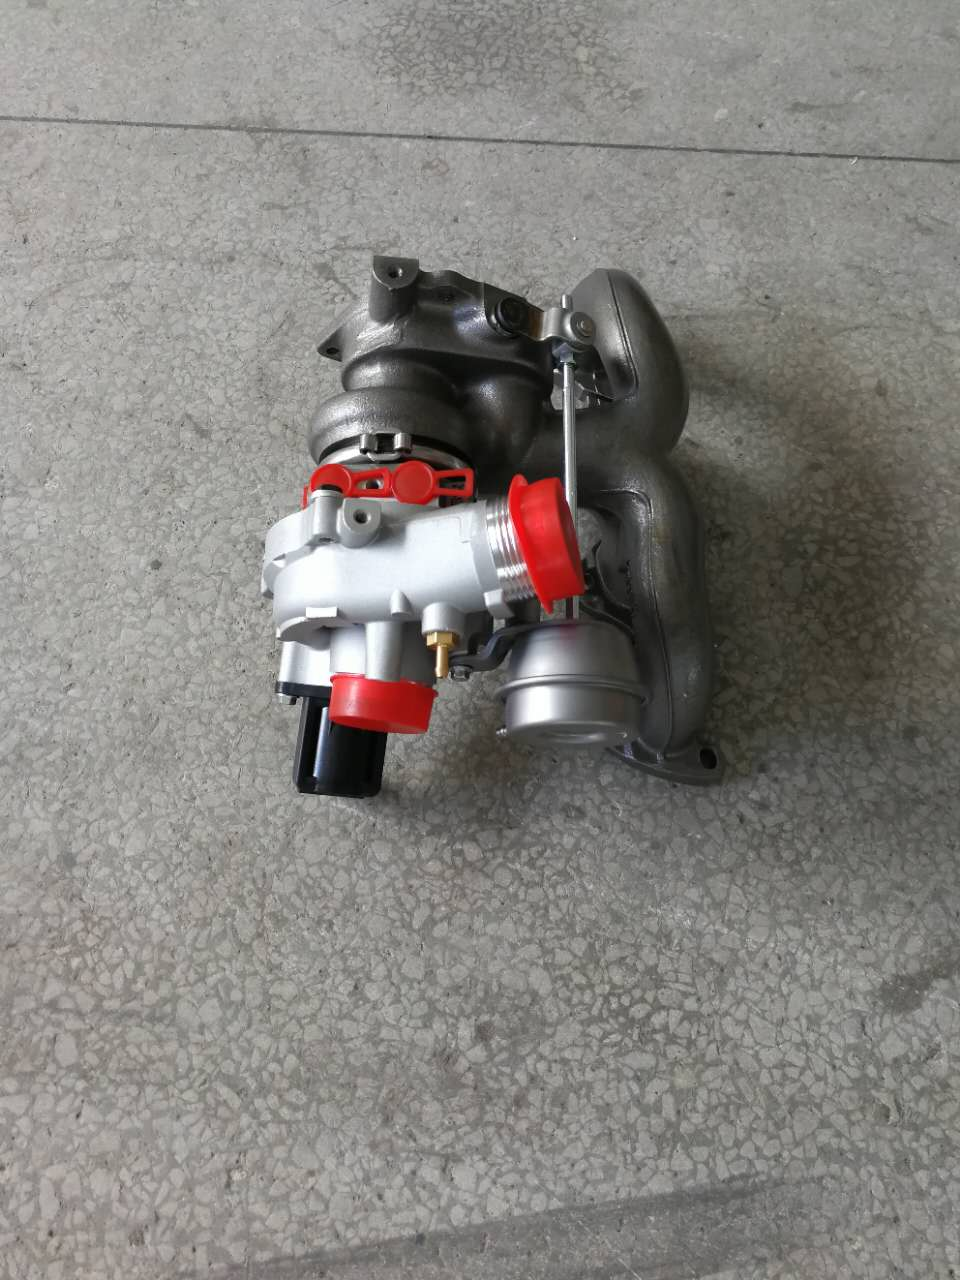 US $285 0 5% OFF|K03 TURBO FOR MK6 GOLF 1 4-in Superchargers & Parts from  Automobiles & Motorcycles on Aliexpress com | Alibaba Group